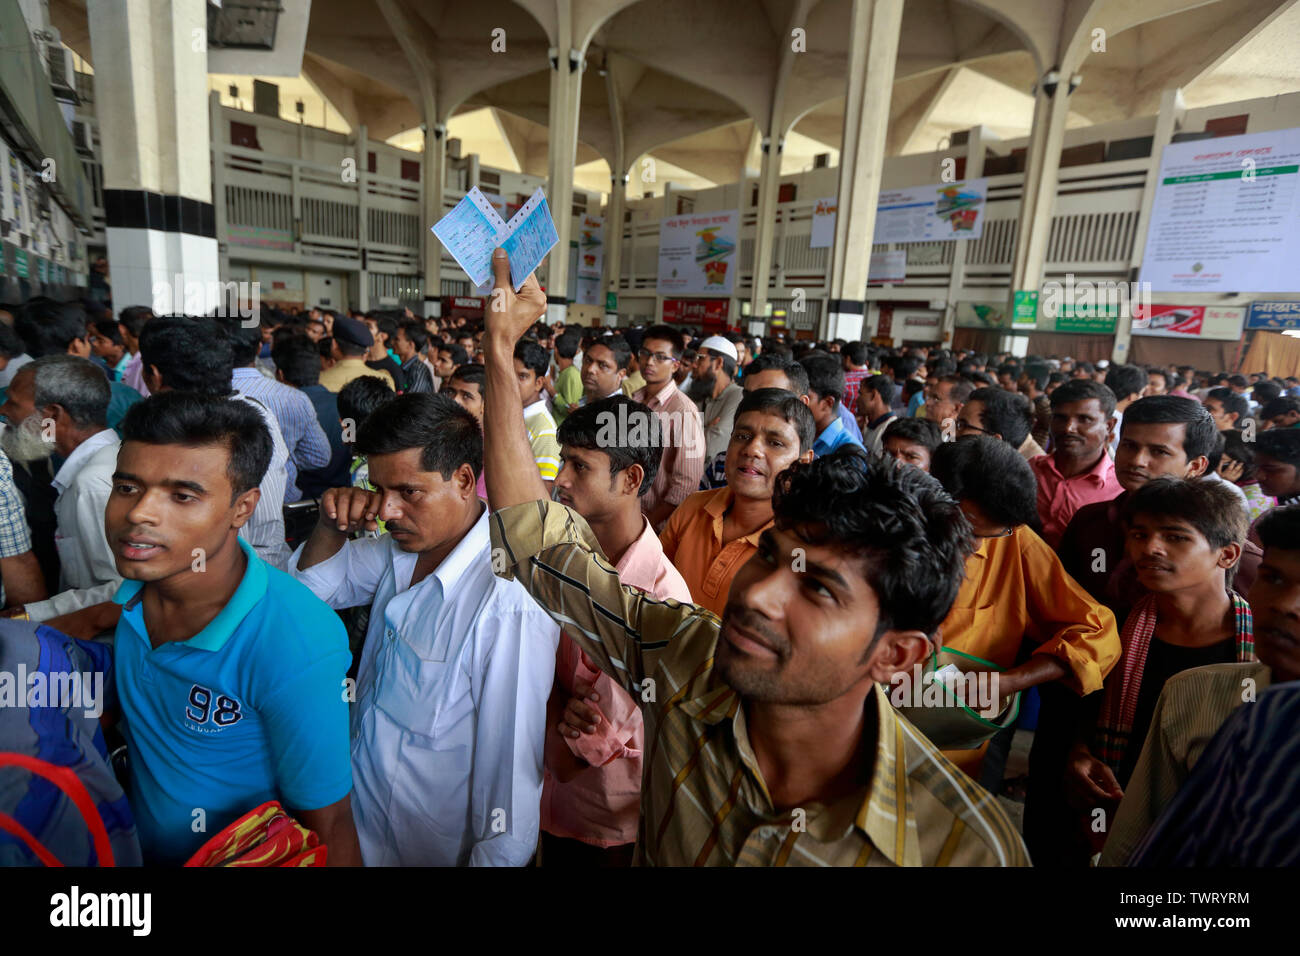 A Man smiles after securing his advanced train tickets for going home in the Eid vacation at Kamlapur railway station, Dhaka, Bangladesh. - Stock Image